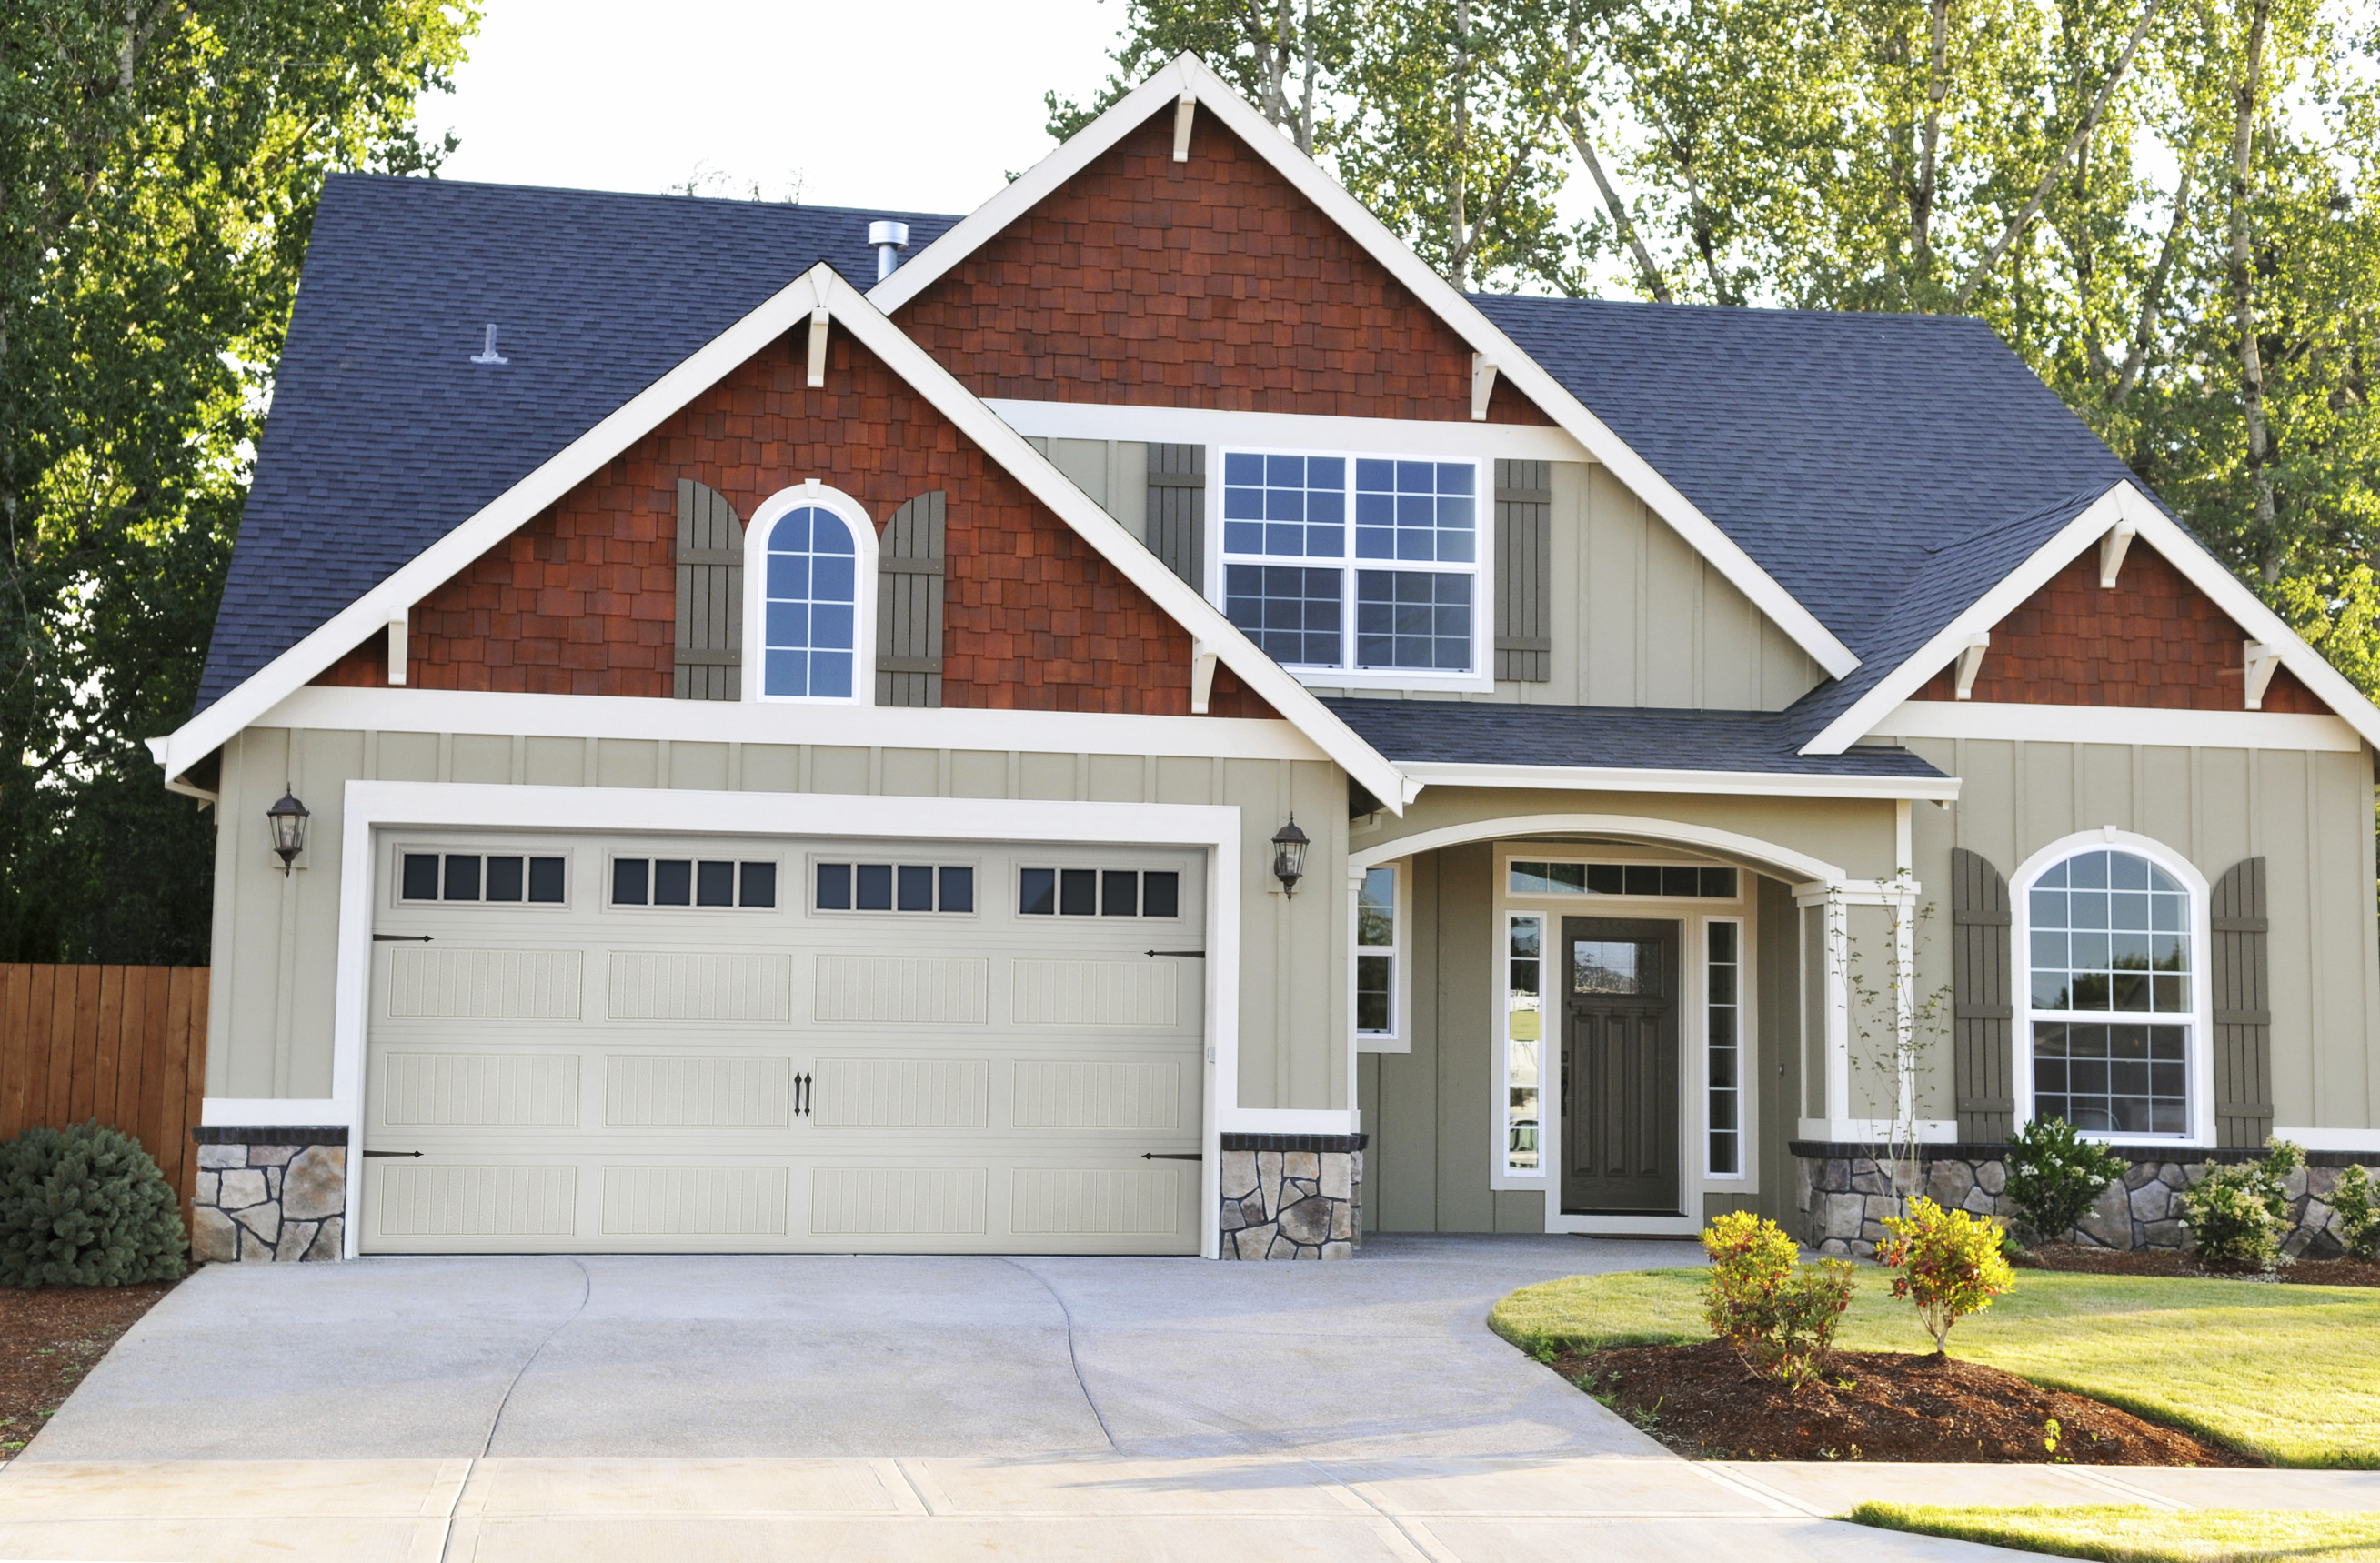 Doors To Garage: Residential / Commercial Garage Door Installation And Repair